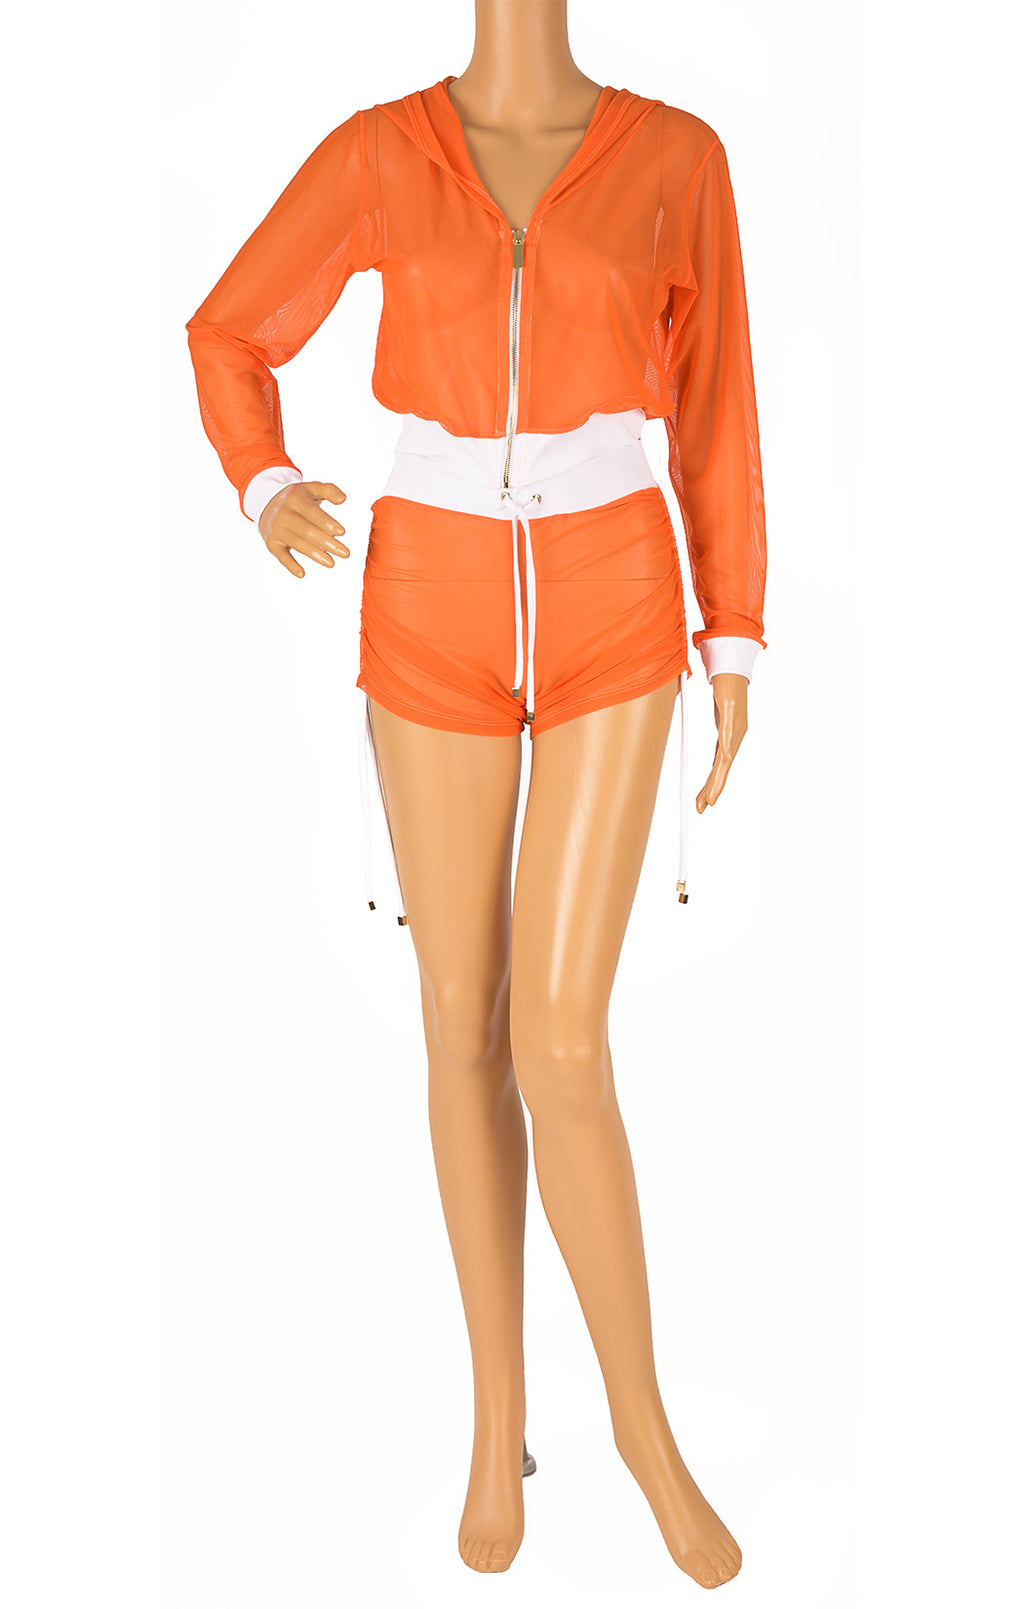 Front view of HEART OF SUN with tags  Matching jacket and shorts Size: Medium for adult